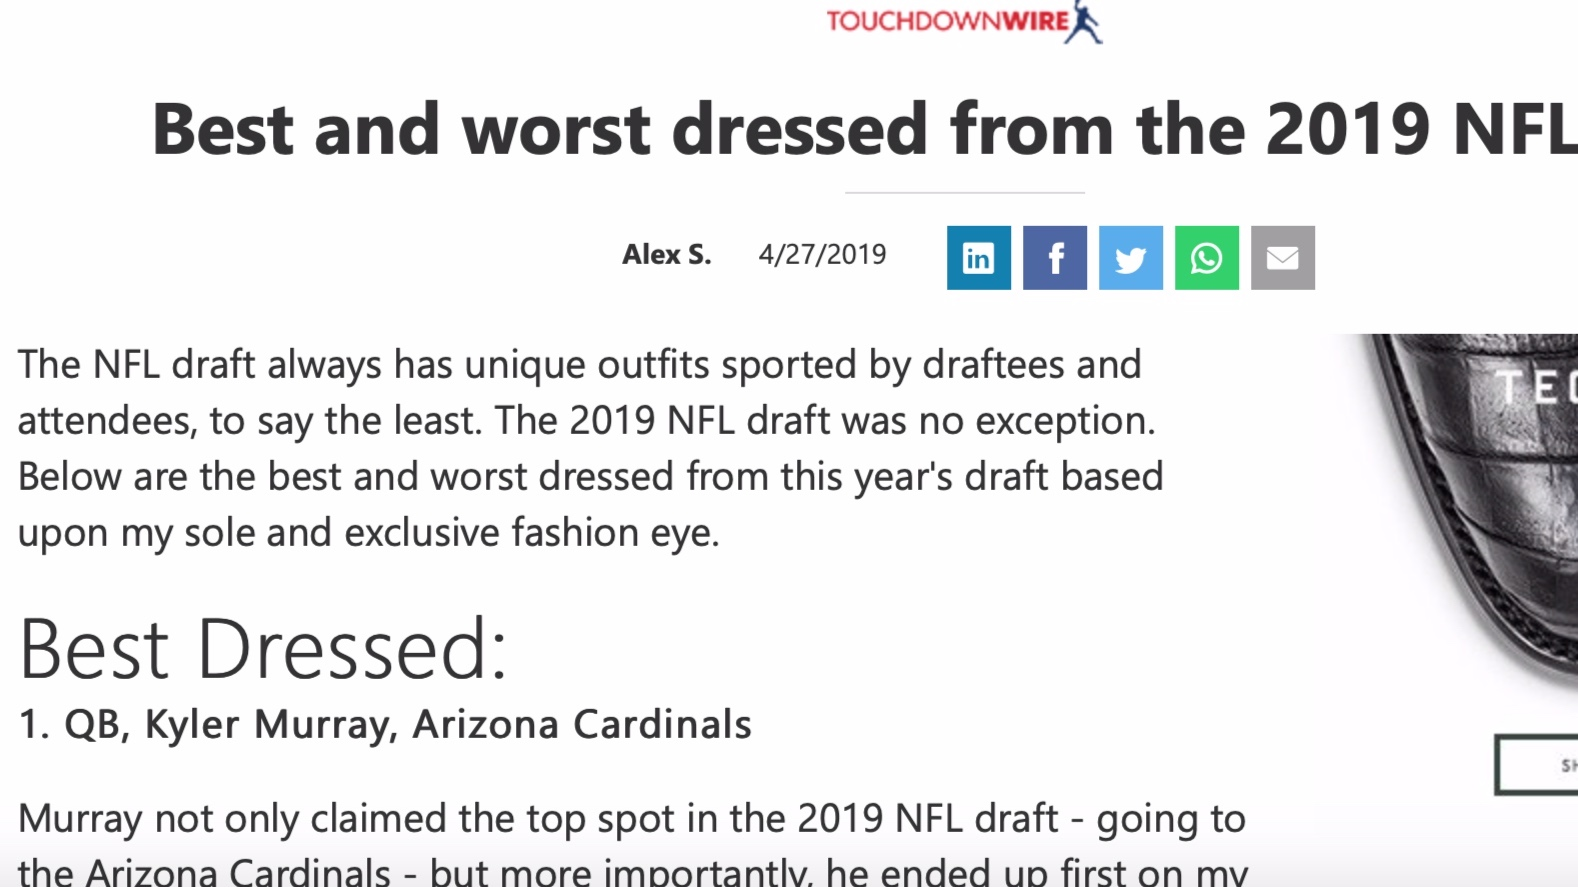 MSN , April 27, 2019   Best and worst dressed from the 2019 NFL Draft